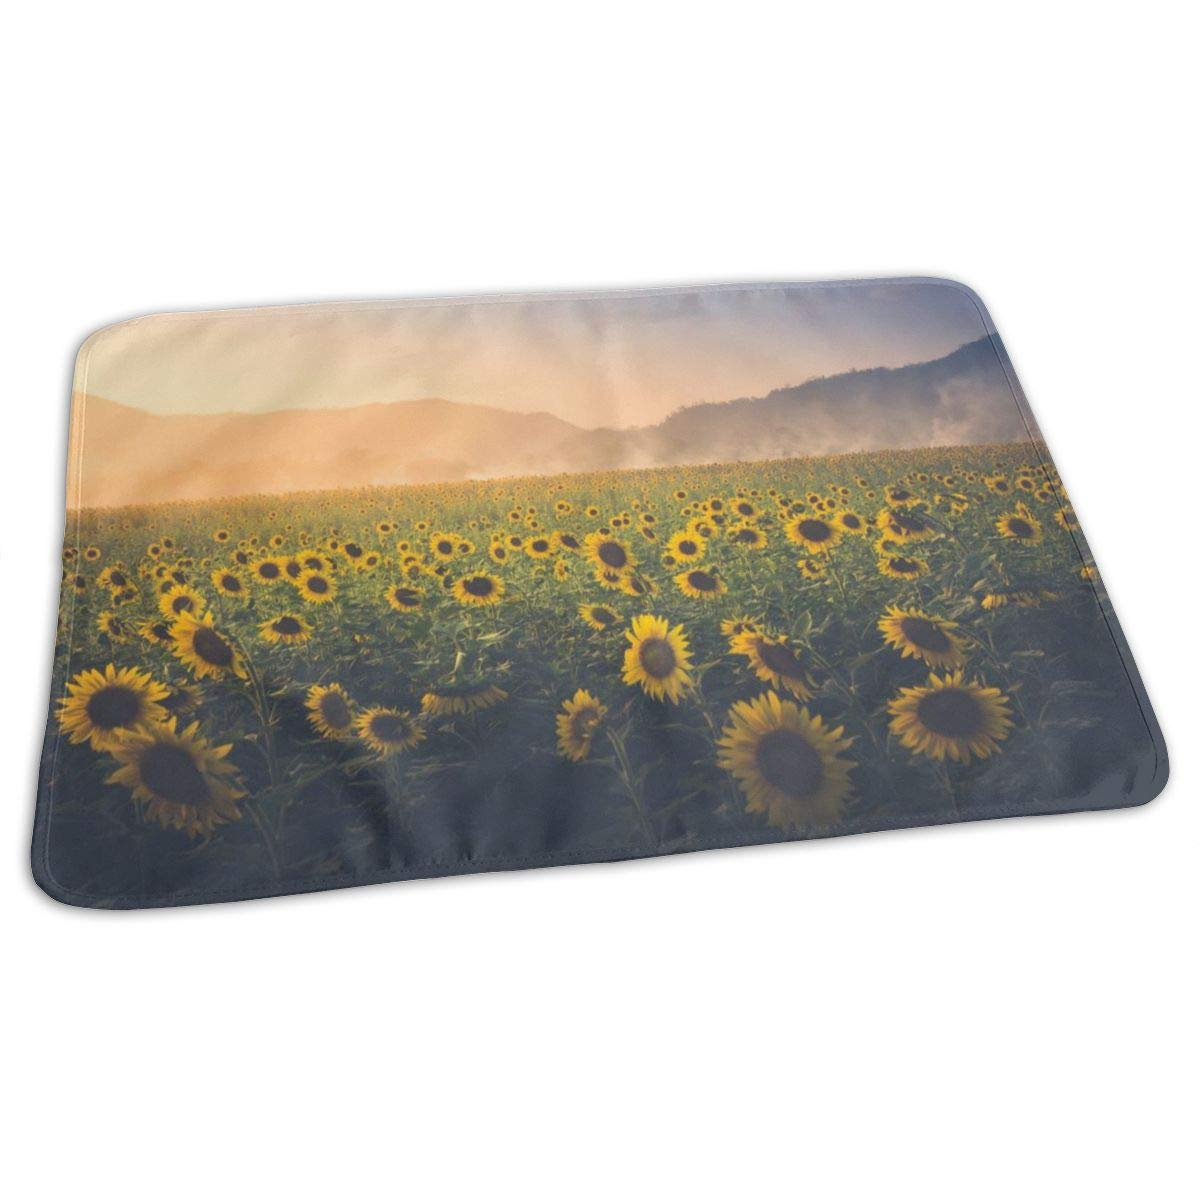 ZZguowuque Portable Changing Pad -Reusable Waterproof Baby Changing Pad(9.457.09 Inch) Sunflower in Dreamland